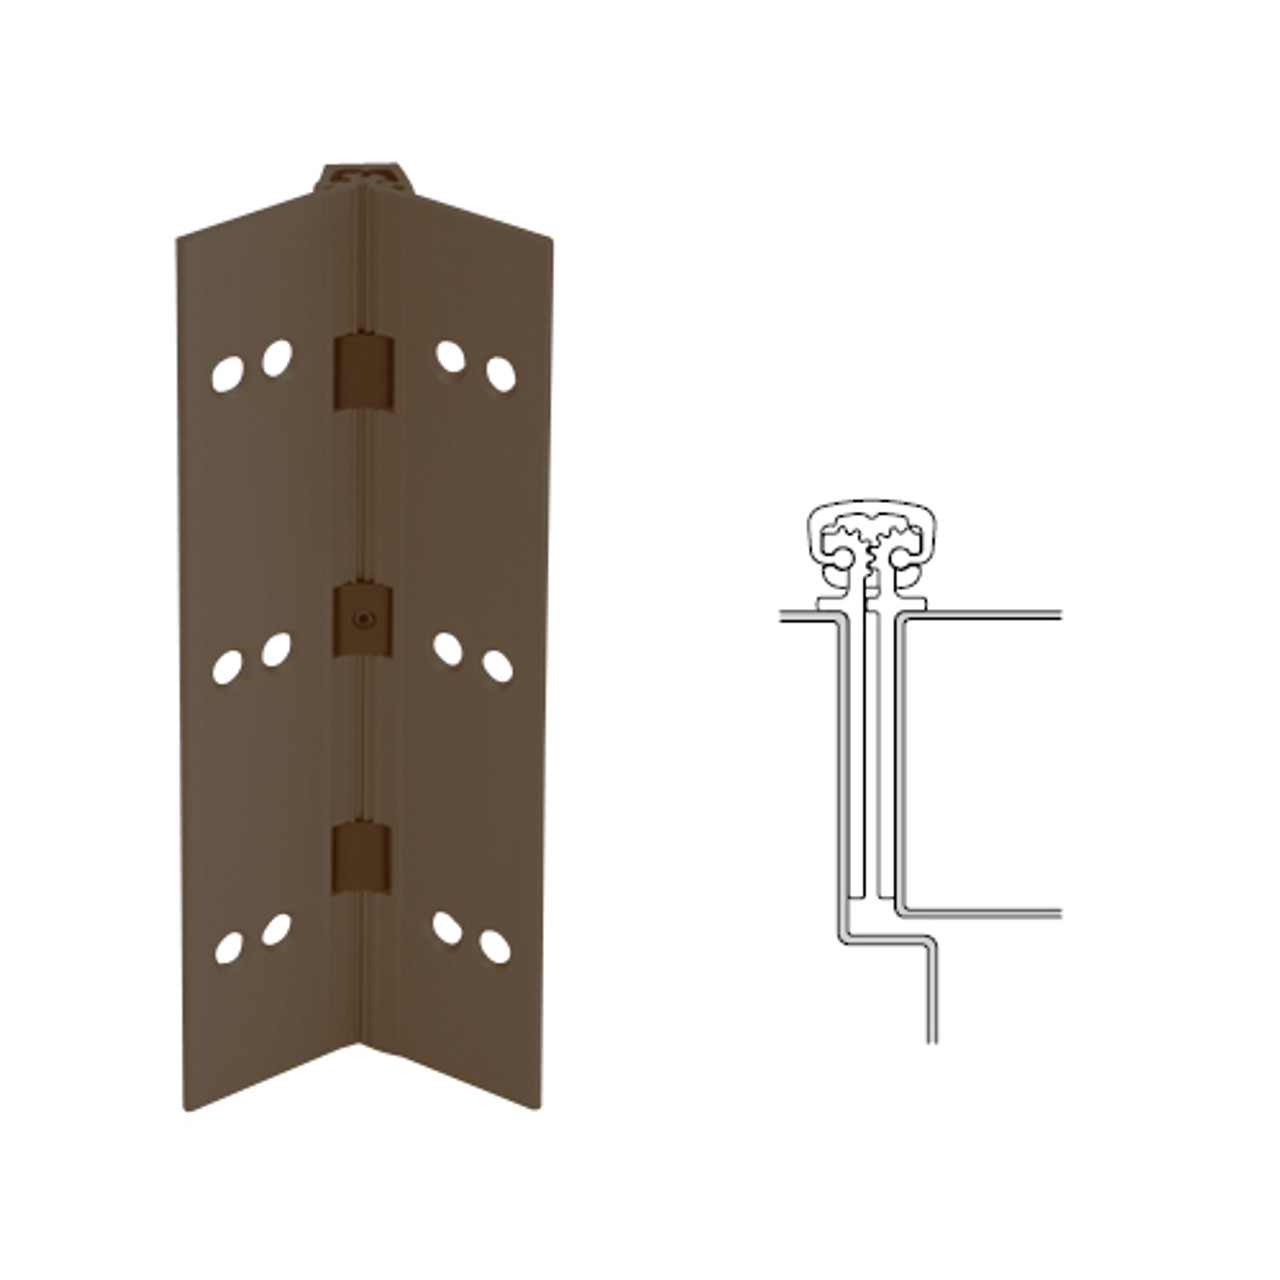 027XY-313AN-120-SECWDHM IVES Full Mortise Continuous Geared Hinges with Security Screws - Hex Pin Drive in Dark Bronze Anodized